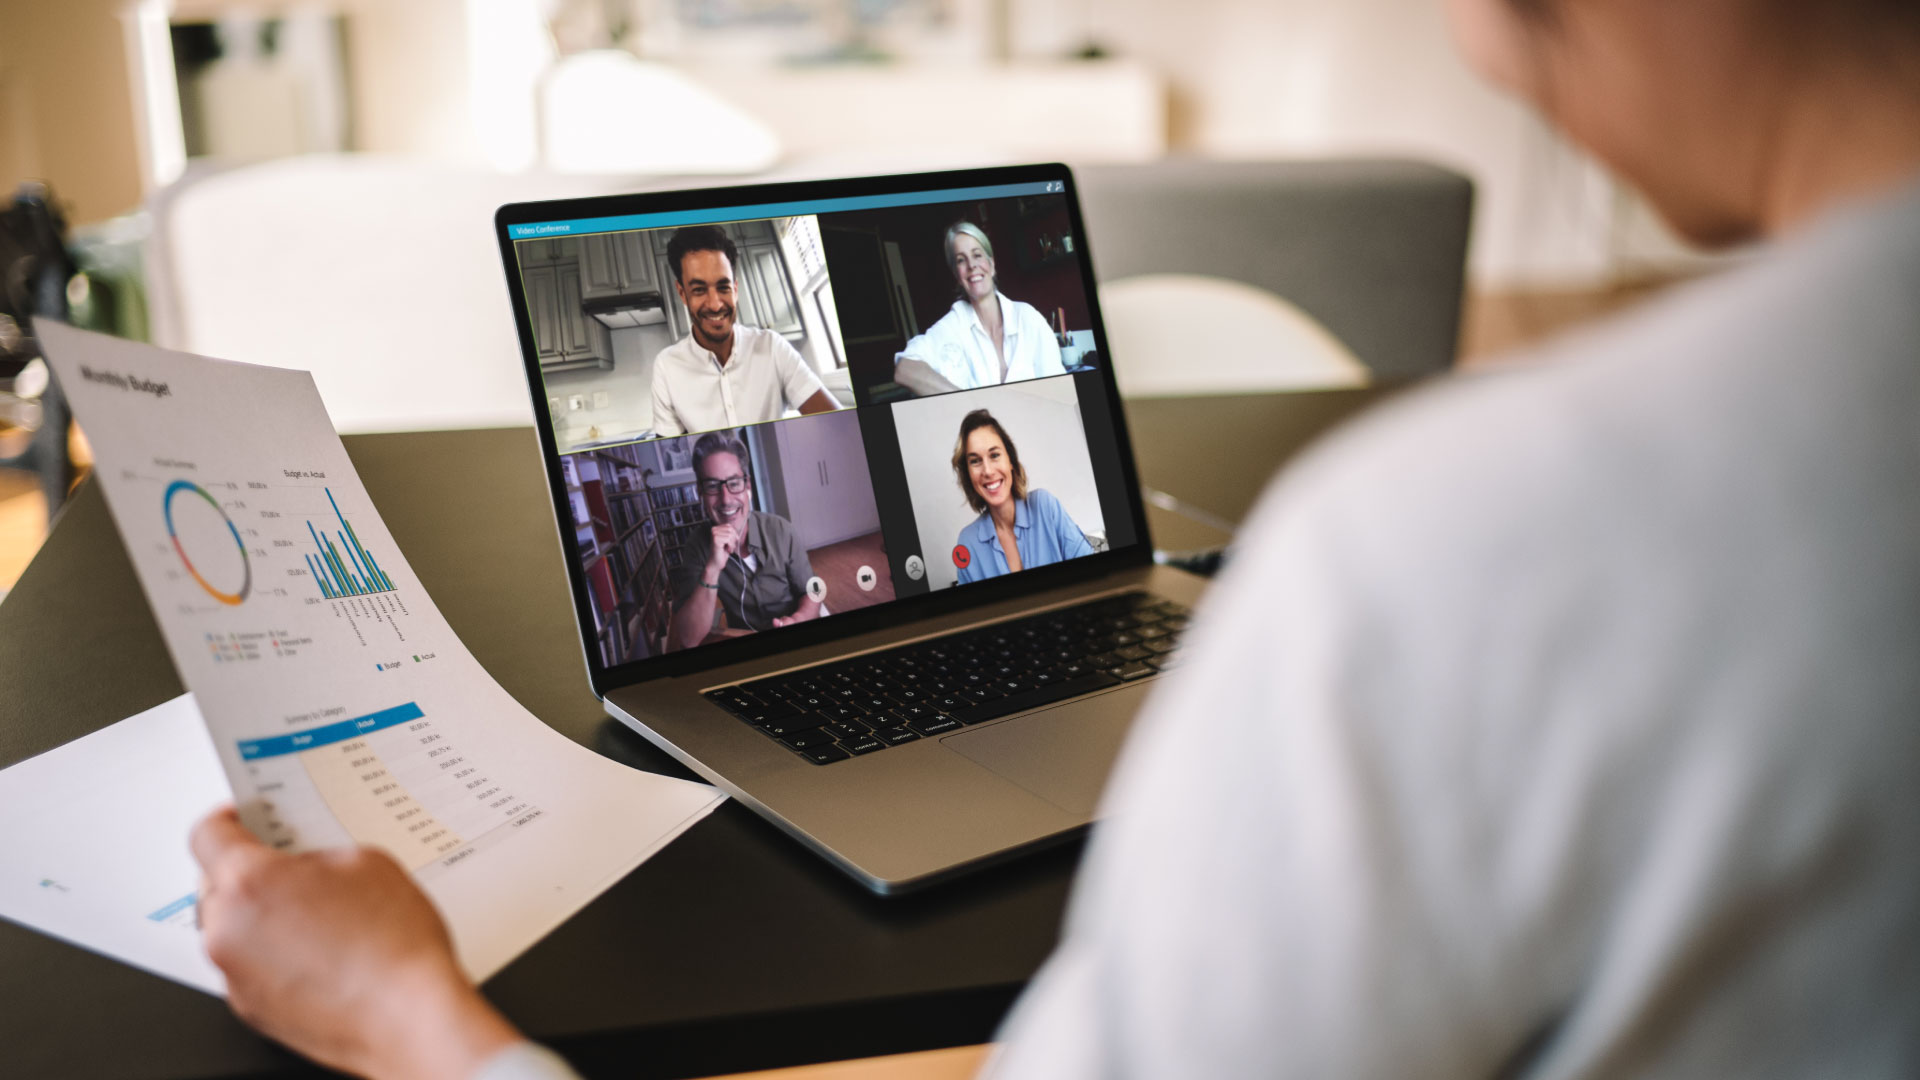 People having remote meeting via video conference